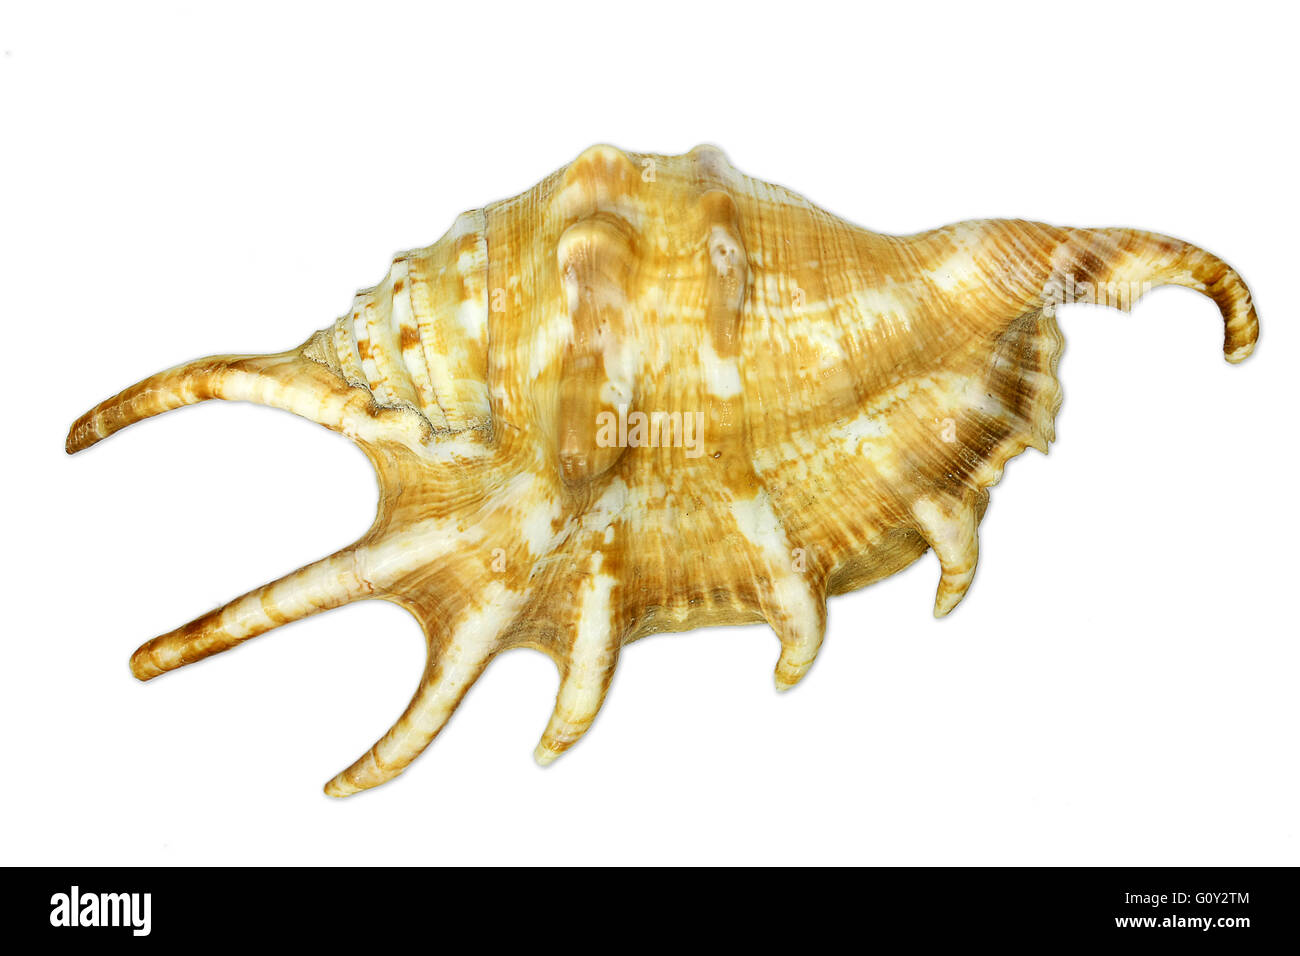 Sea snail with spikes isolated on white background - Stock Image